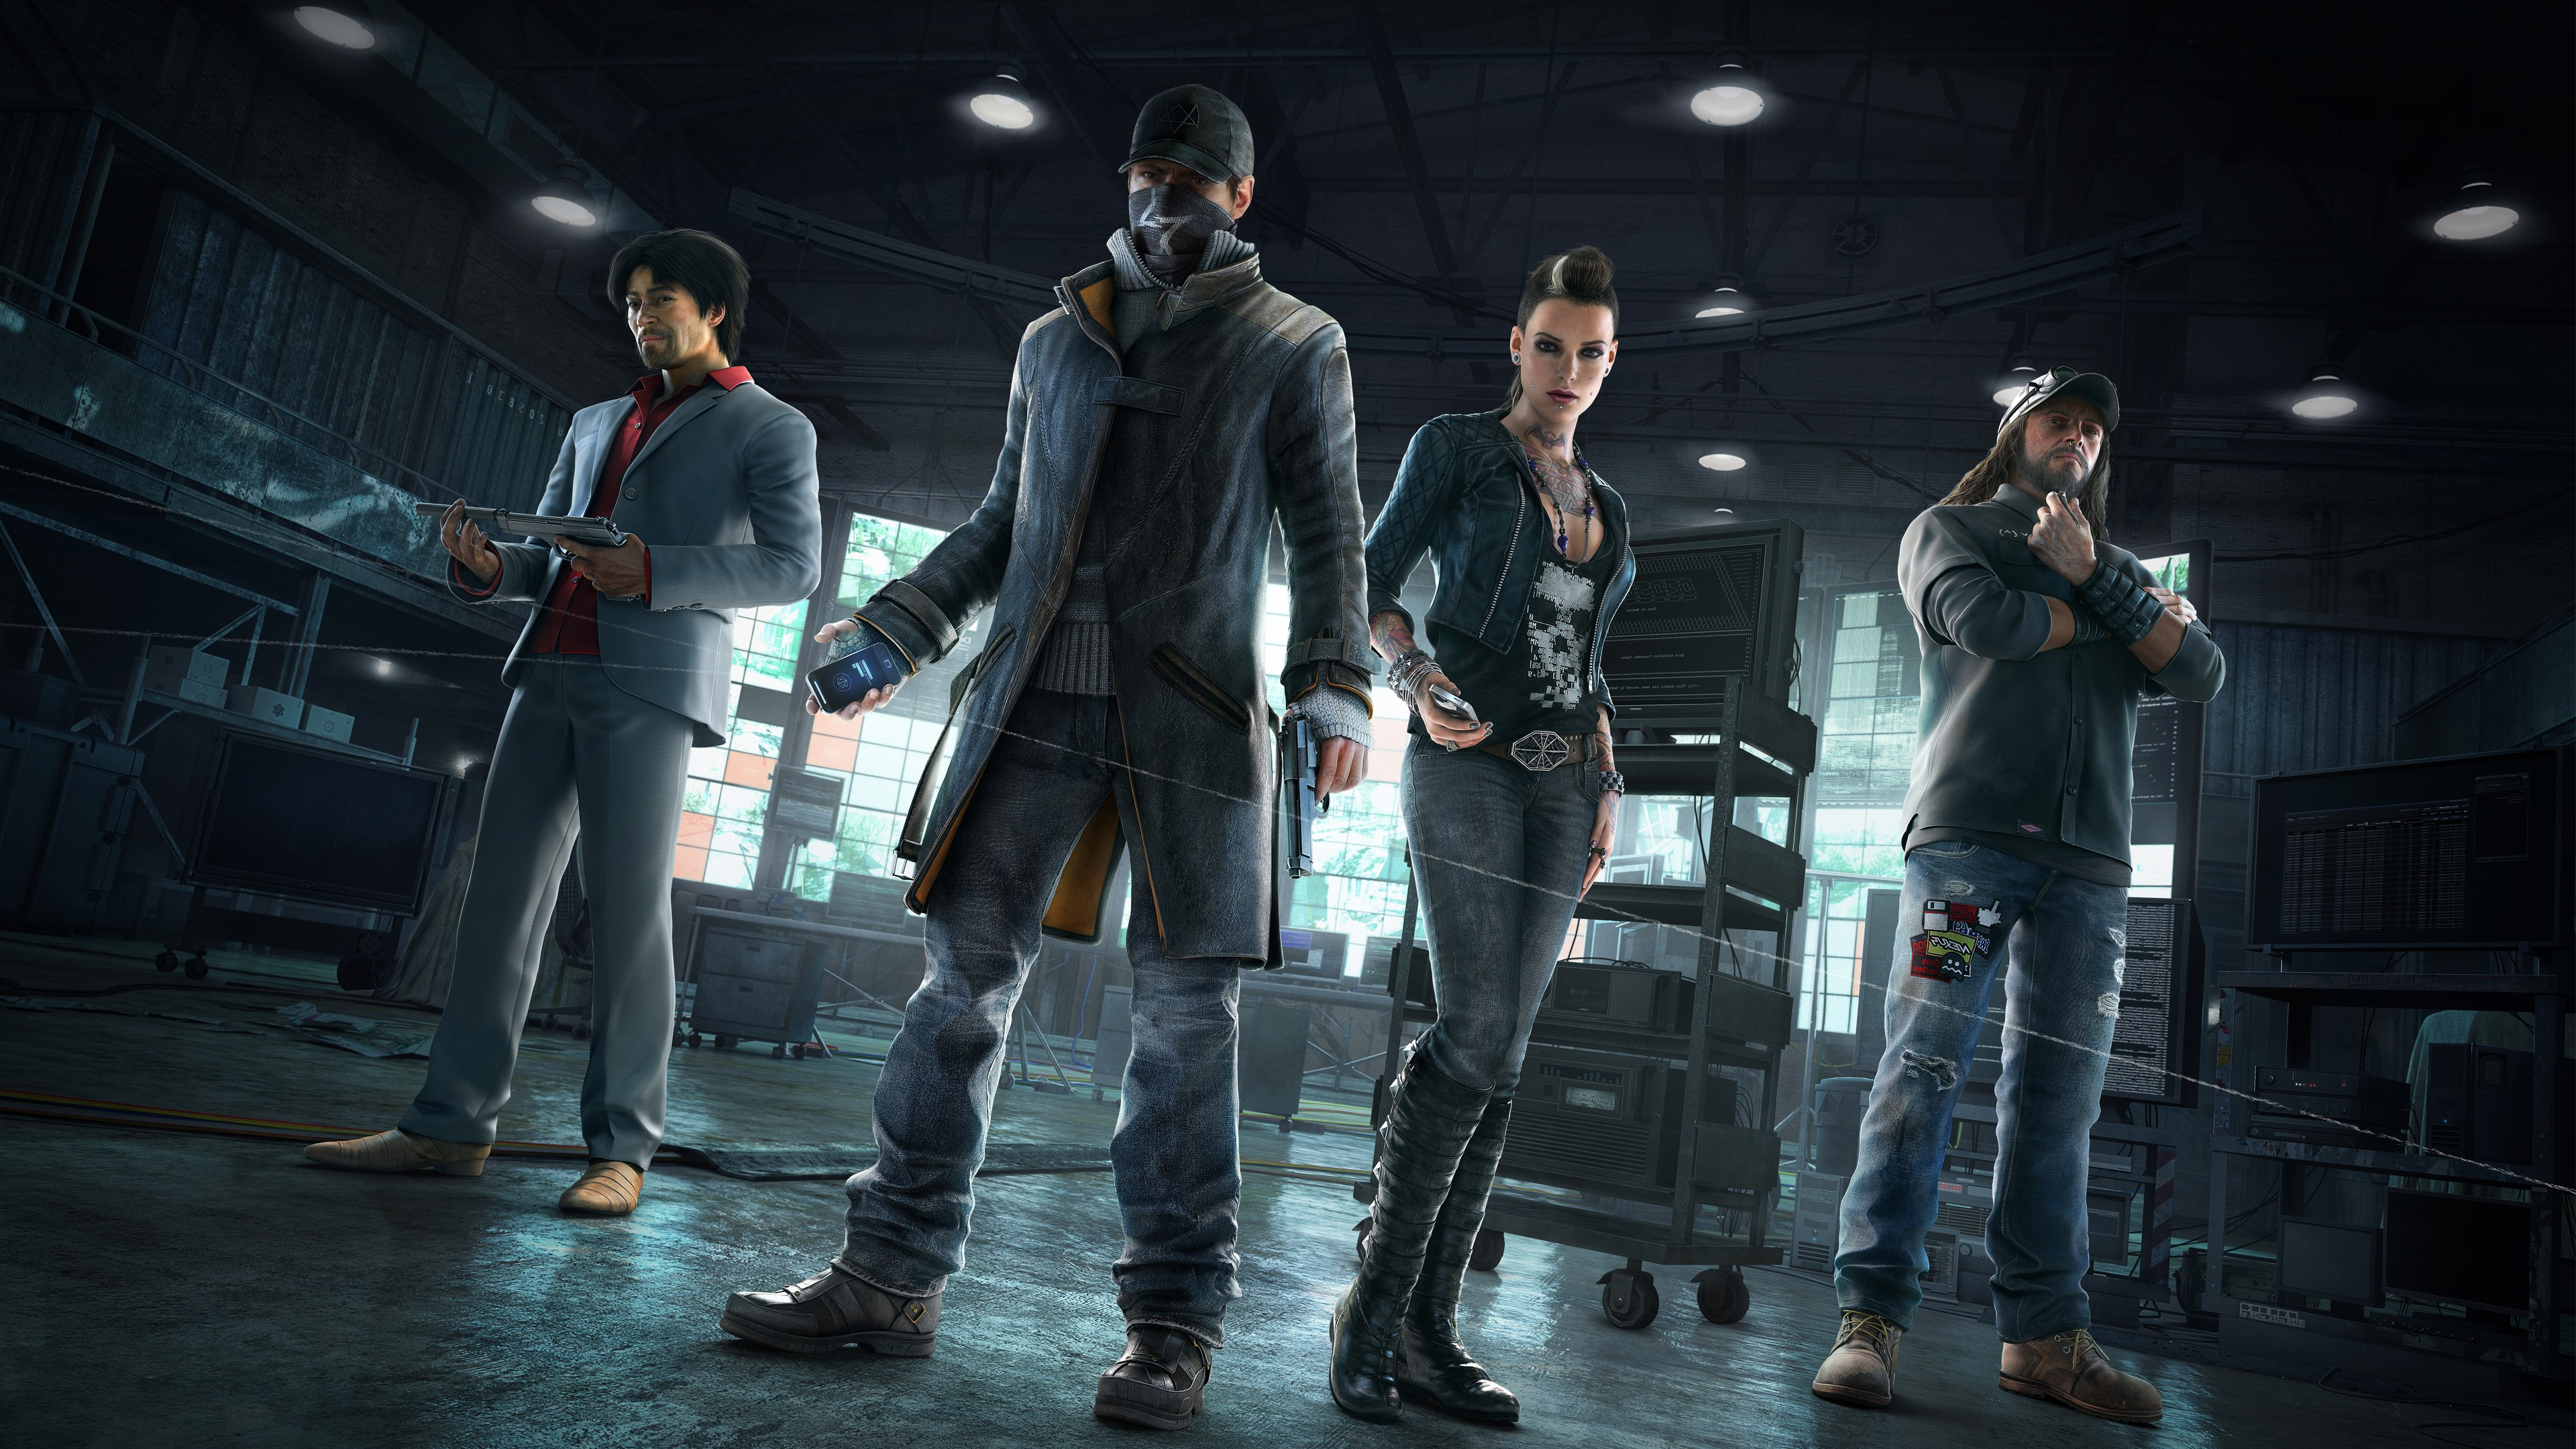 Watch Dogs 2 Wallpaper Download Free Beautiful: Watch Dogs 2, HD Games, 4k Wallpapers, Images, Backgrounds